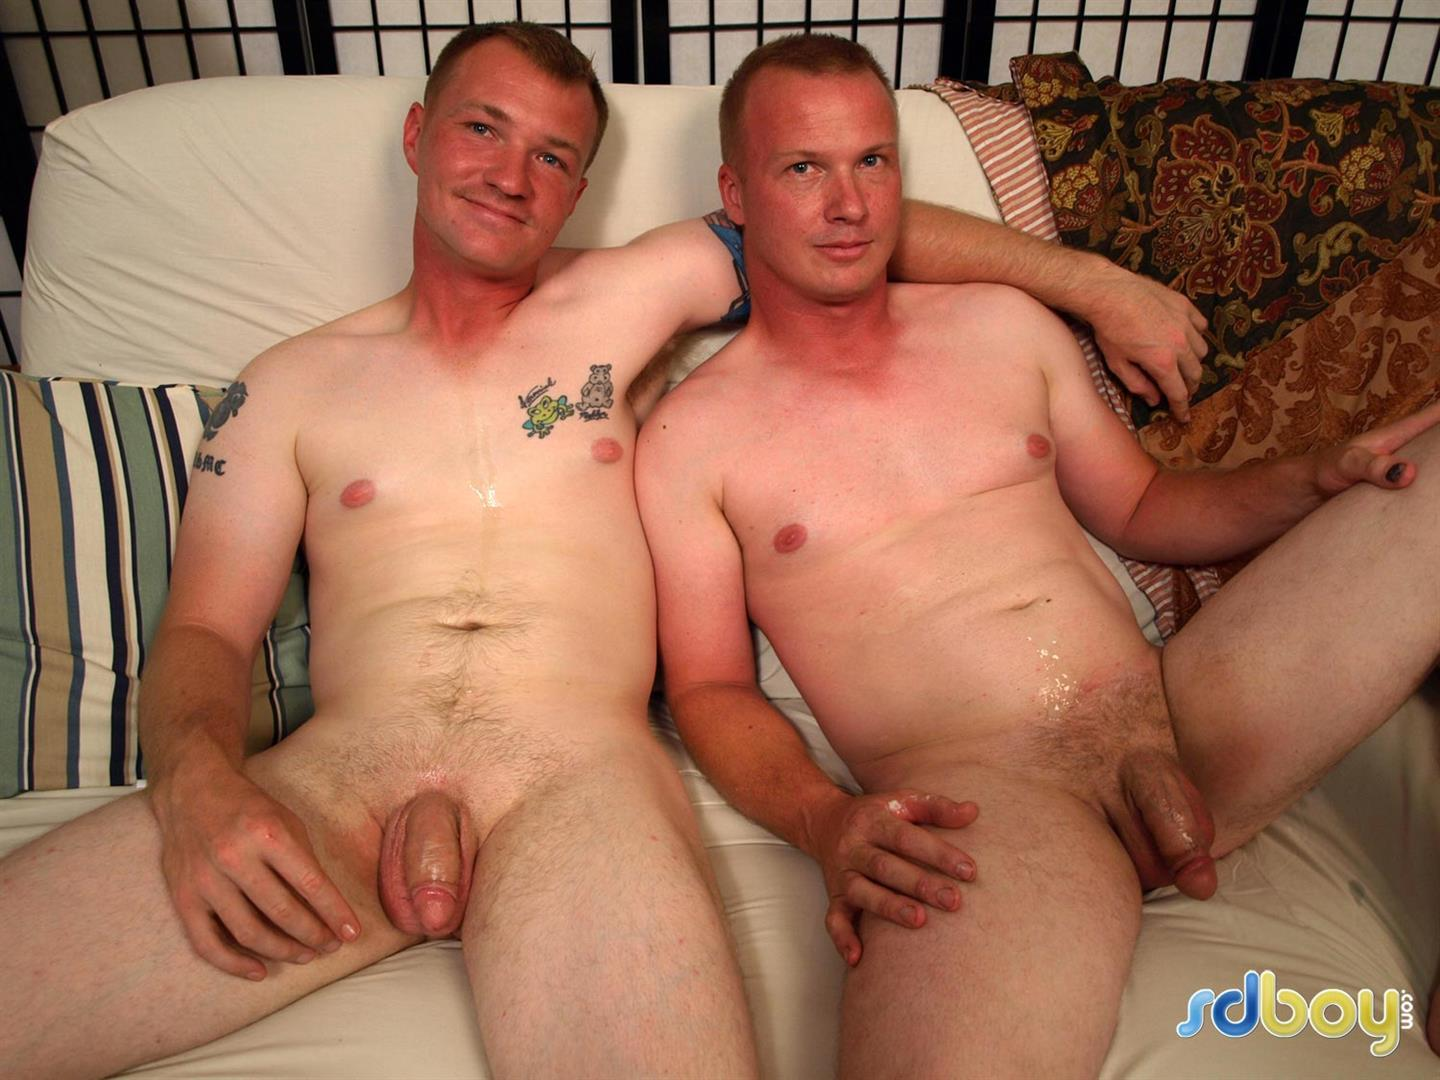 SD-Boys-Marines-Phillips-Brothers-Preston-Phillips-and-Justin-Phillips-Marine-Brothers-Jerking-Off-Amateur-Gay-Porn-44 Real Life Active Duty Marine Brothers Comparing Cocks & Jerking Off